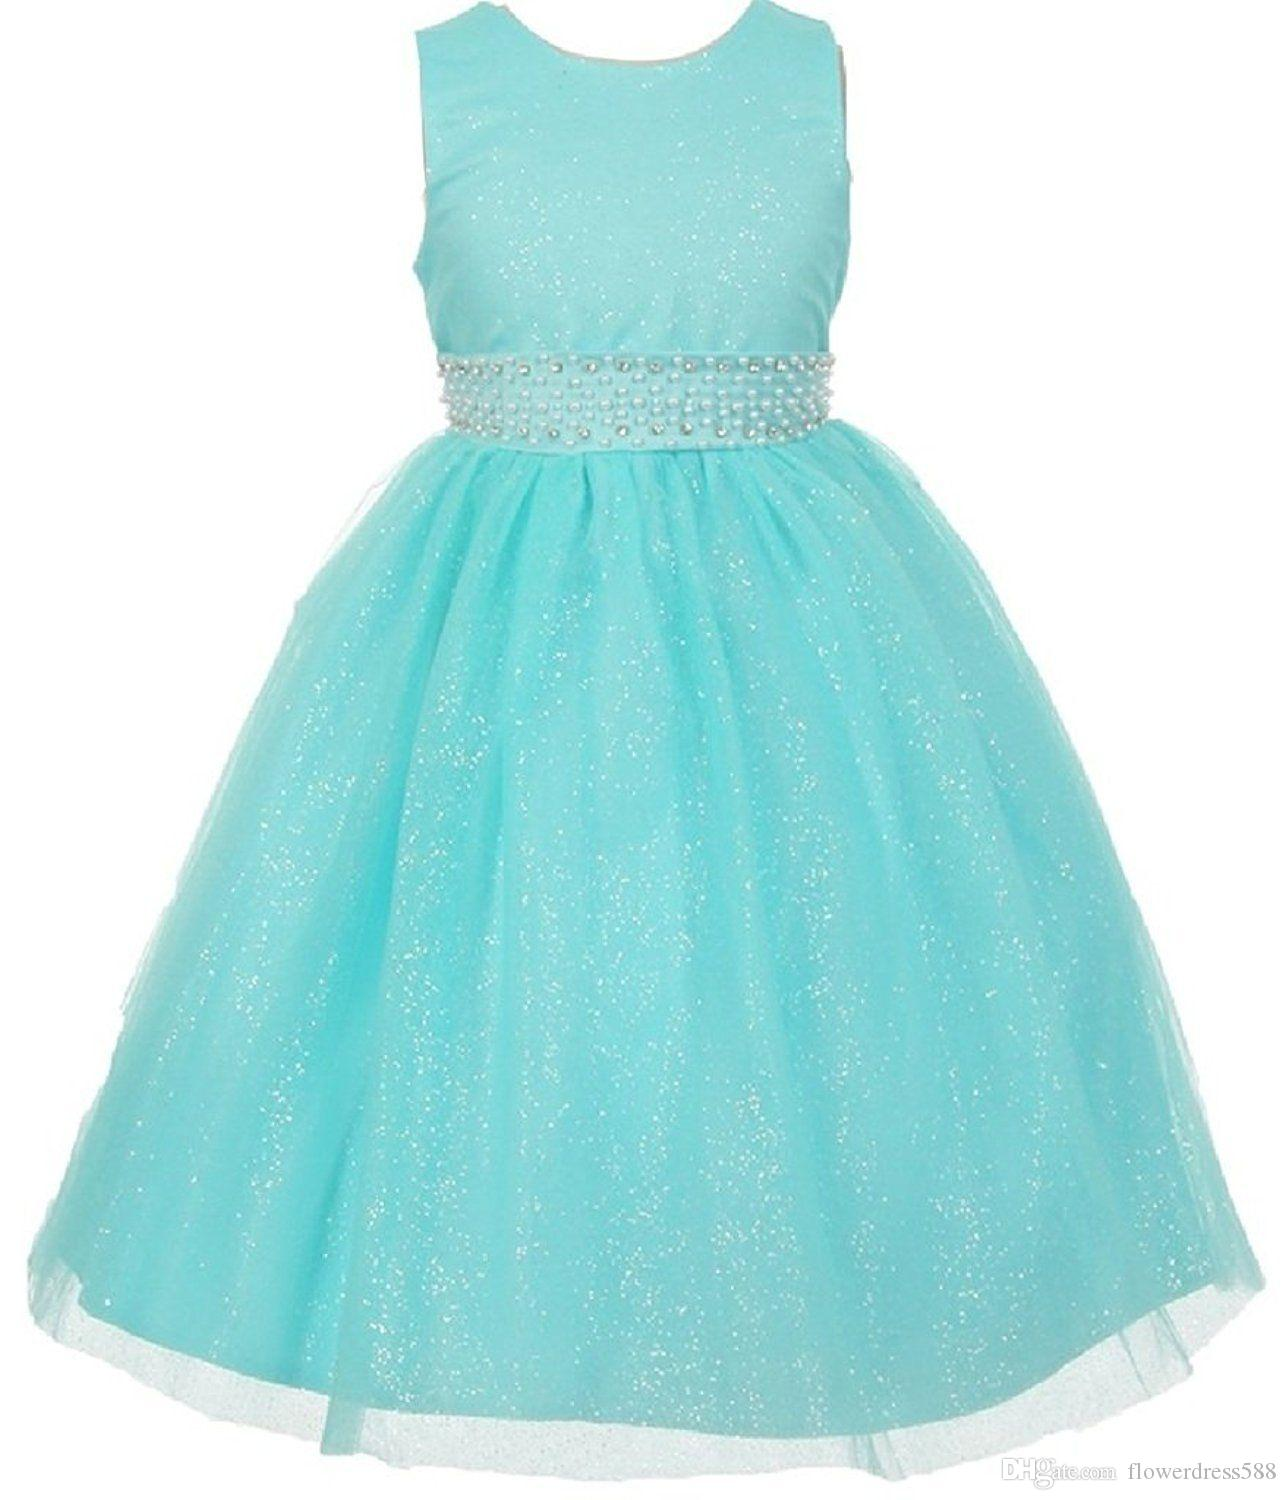 Big girls shiny glitter sparkle waist belt flowers girls dresses big girls shiny glitter sparkle waist belt flowers girls dresses aqua size 10 girl bridesmaid dresses girl dresses for special occasions from flowerdress588 ombrellifo Choice Image